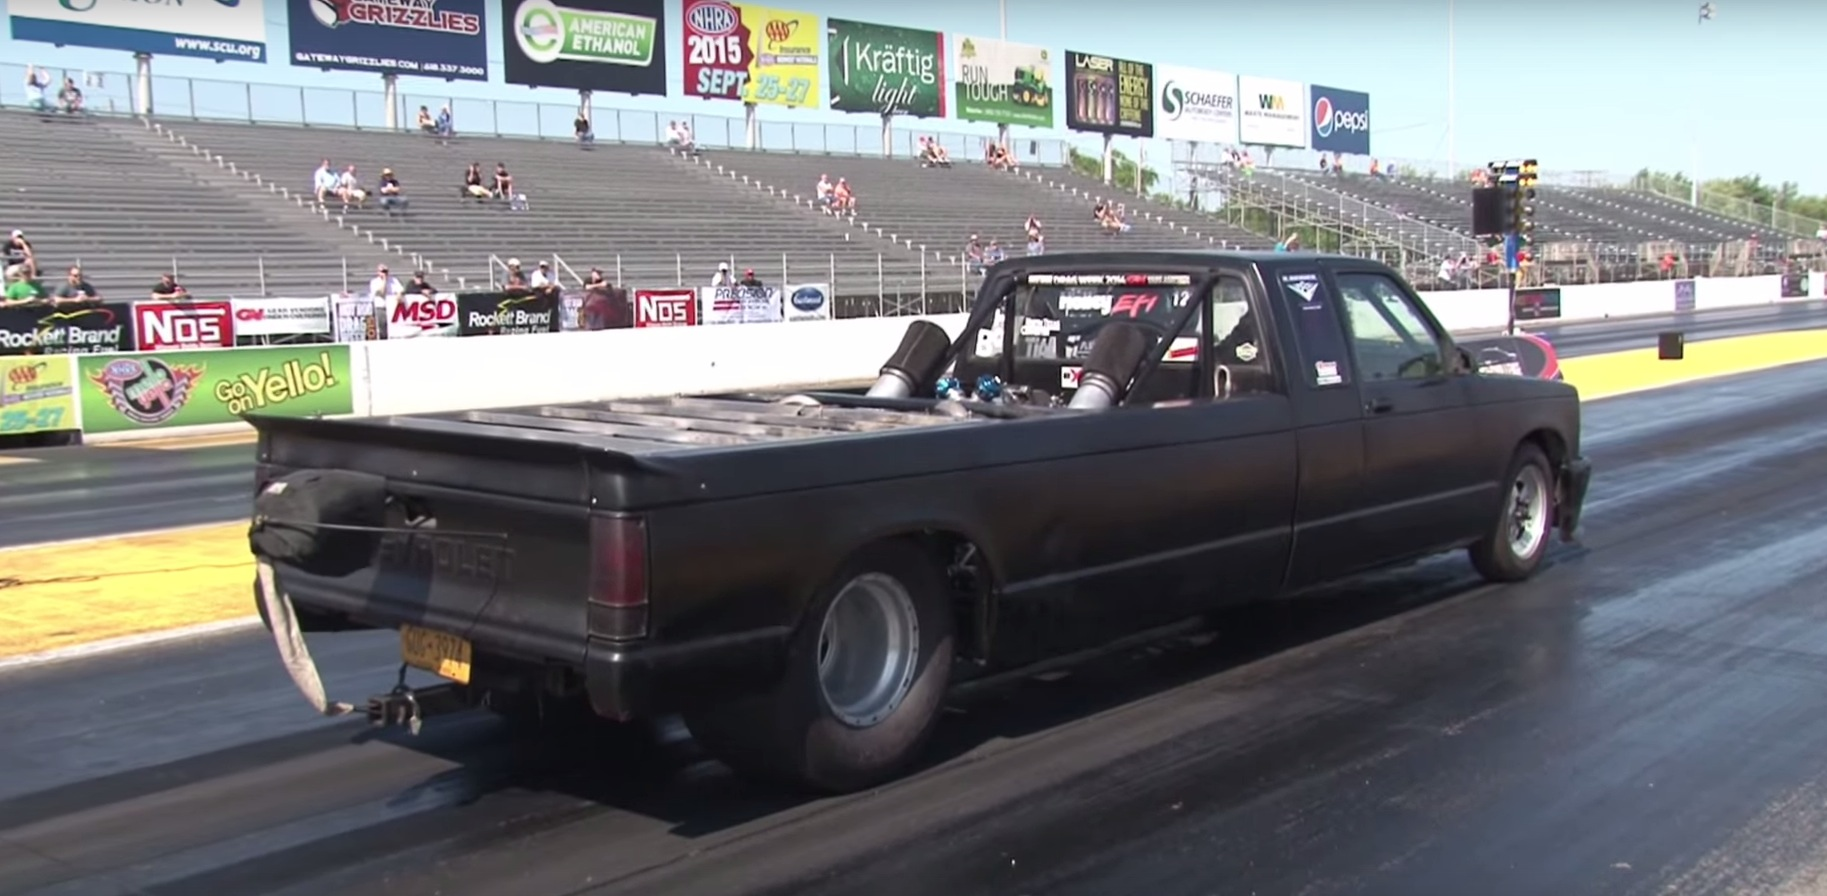 Stretched Chevy S10 Truck Has a Twin-Turbo Big Block in Its